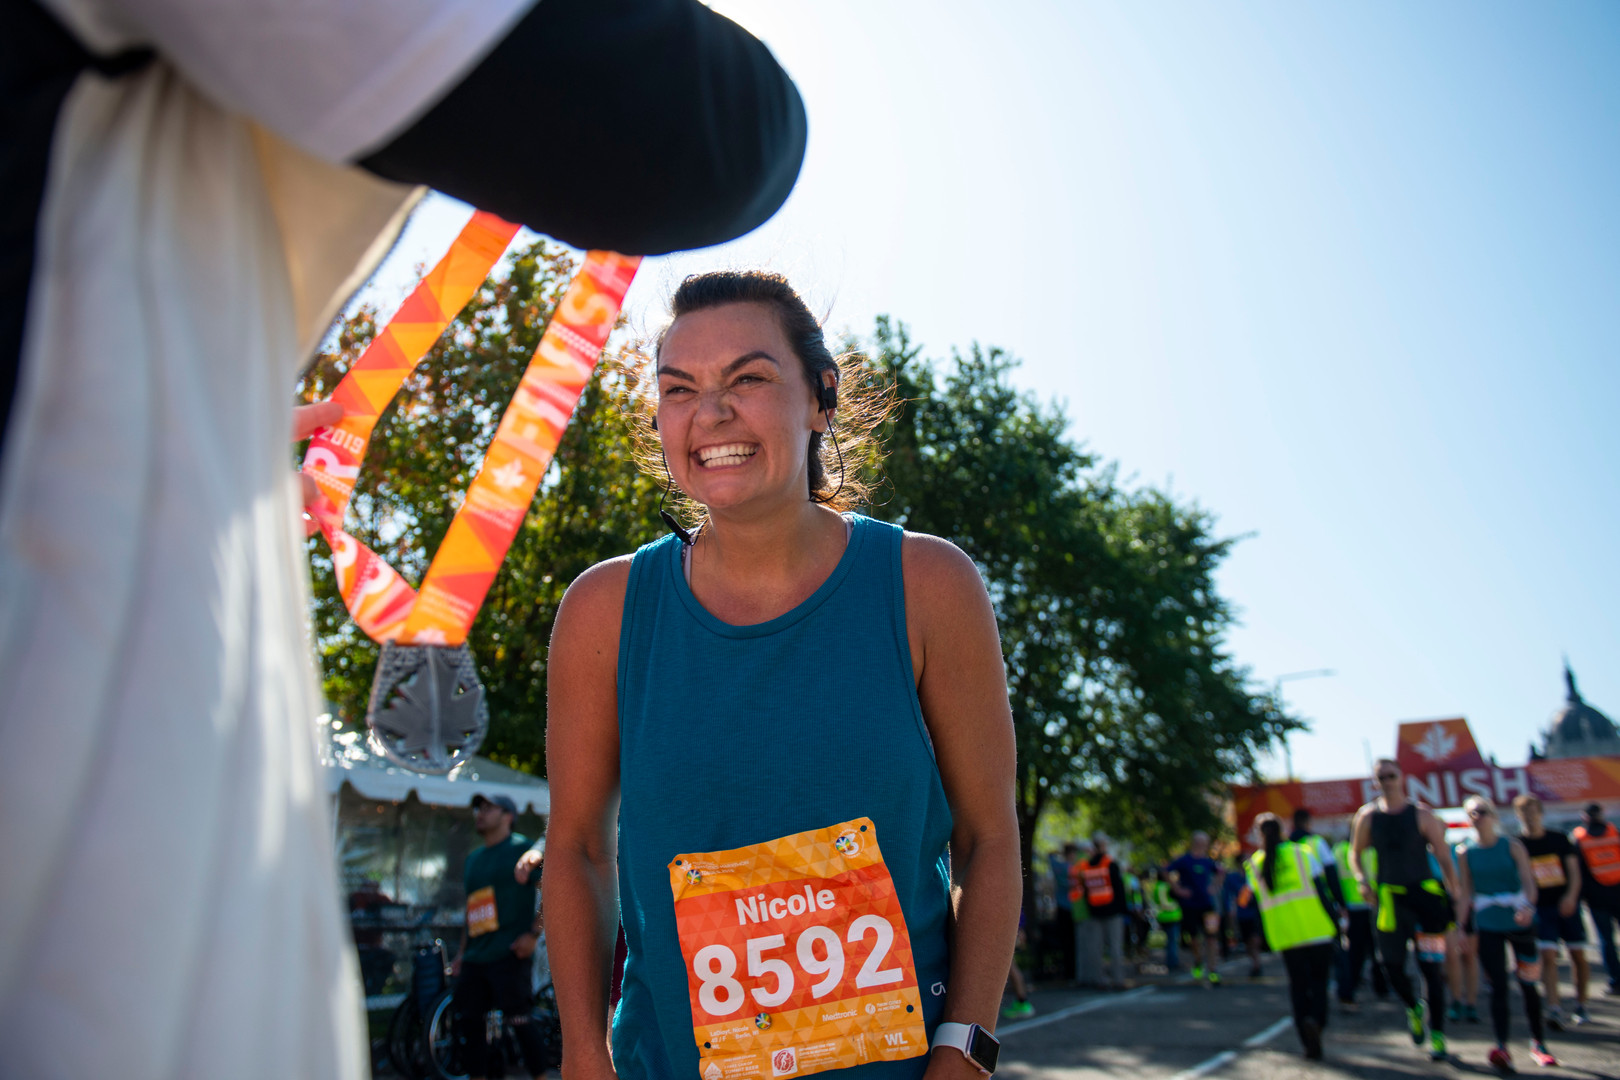 Nicole Ledioyt receives a medal after finishing the Twin Cities Marathon on Sunday, Oct. 6, 2019.